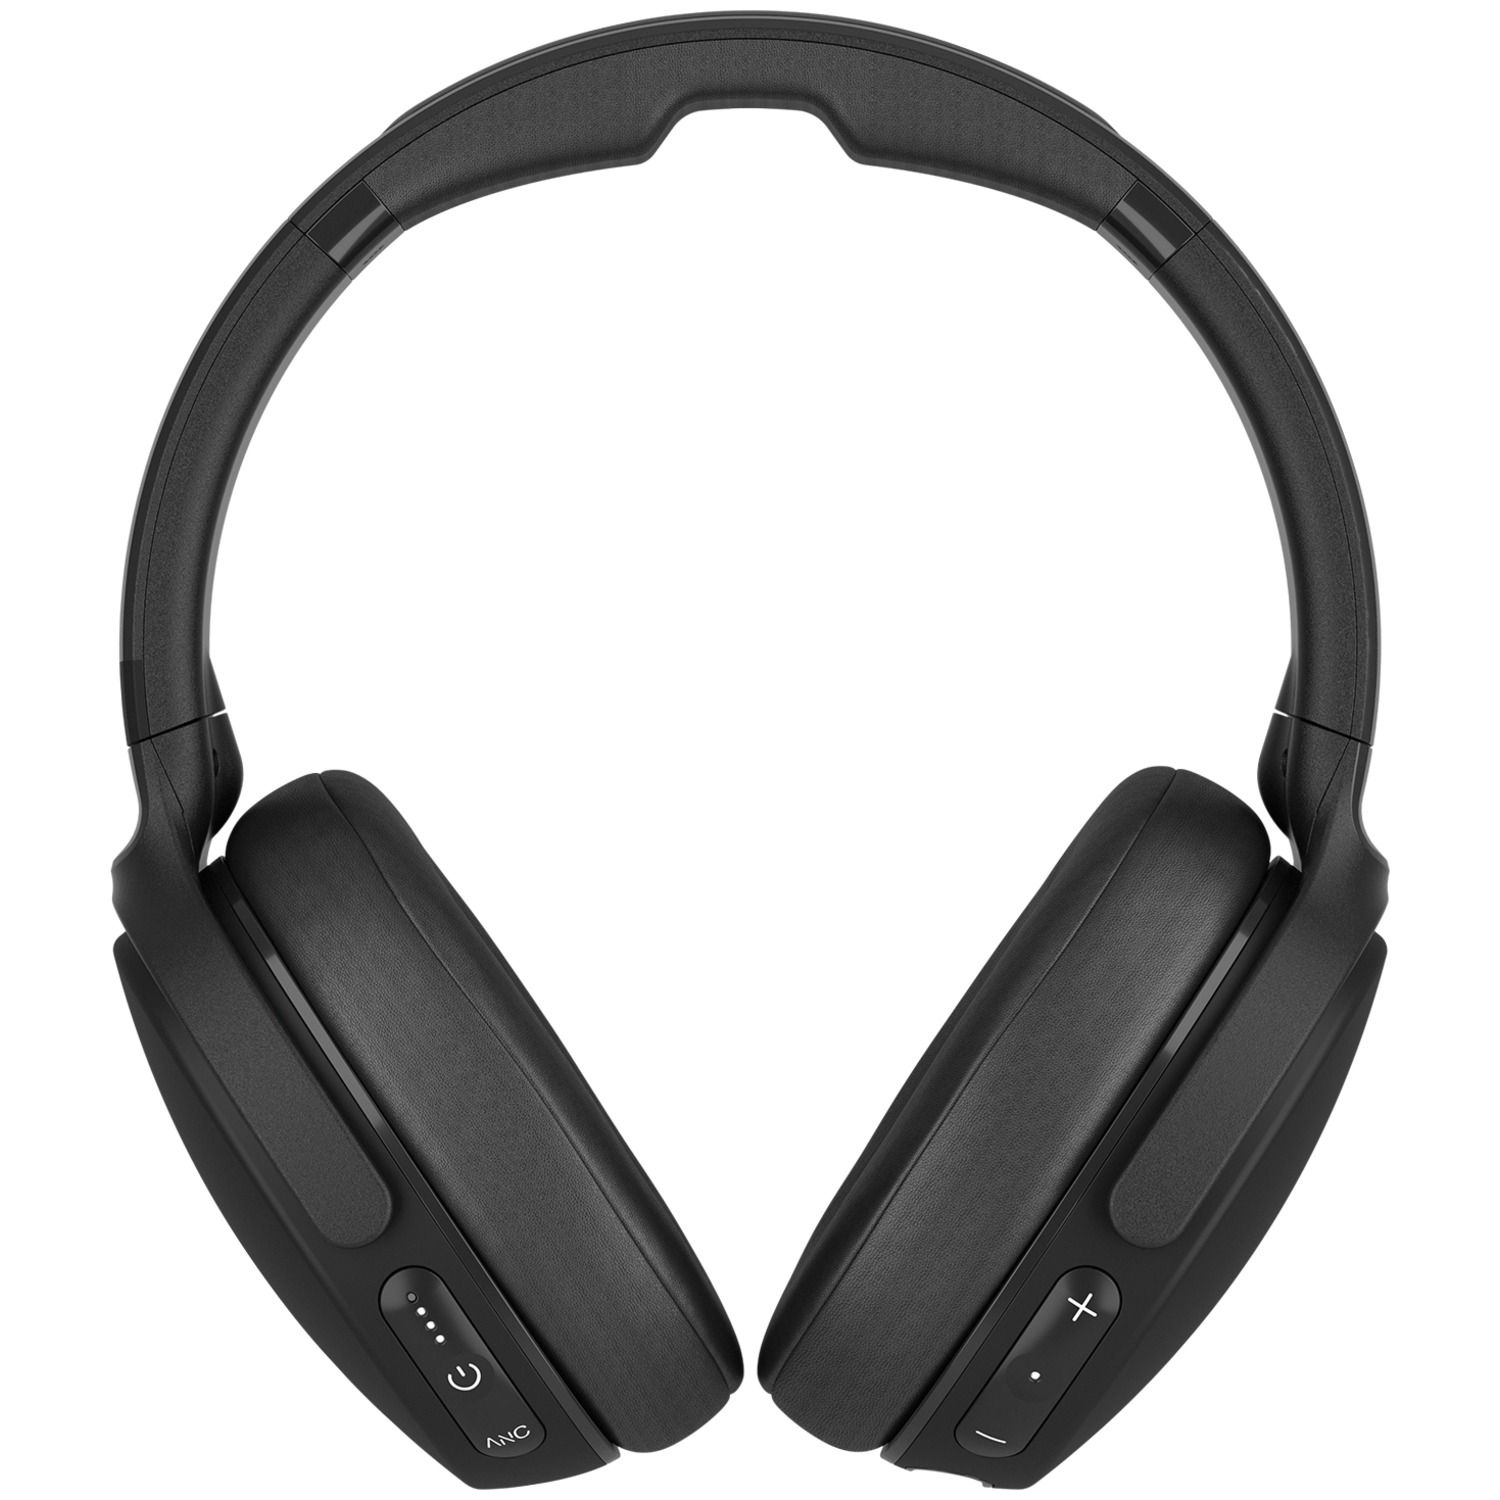 Skullcandy S6HCW-L003 Venue Over-Ear Active Noise-Canceling Bluetooth Headphones (Black)